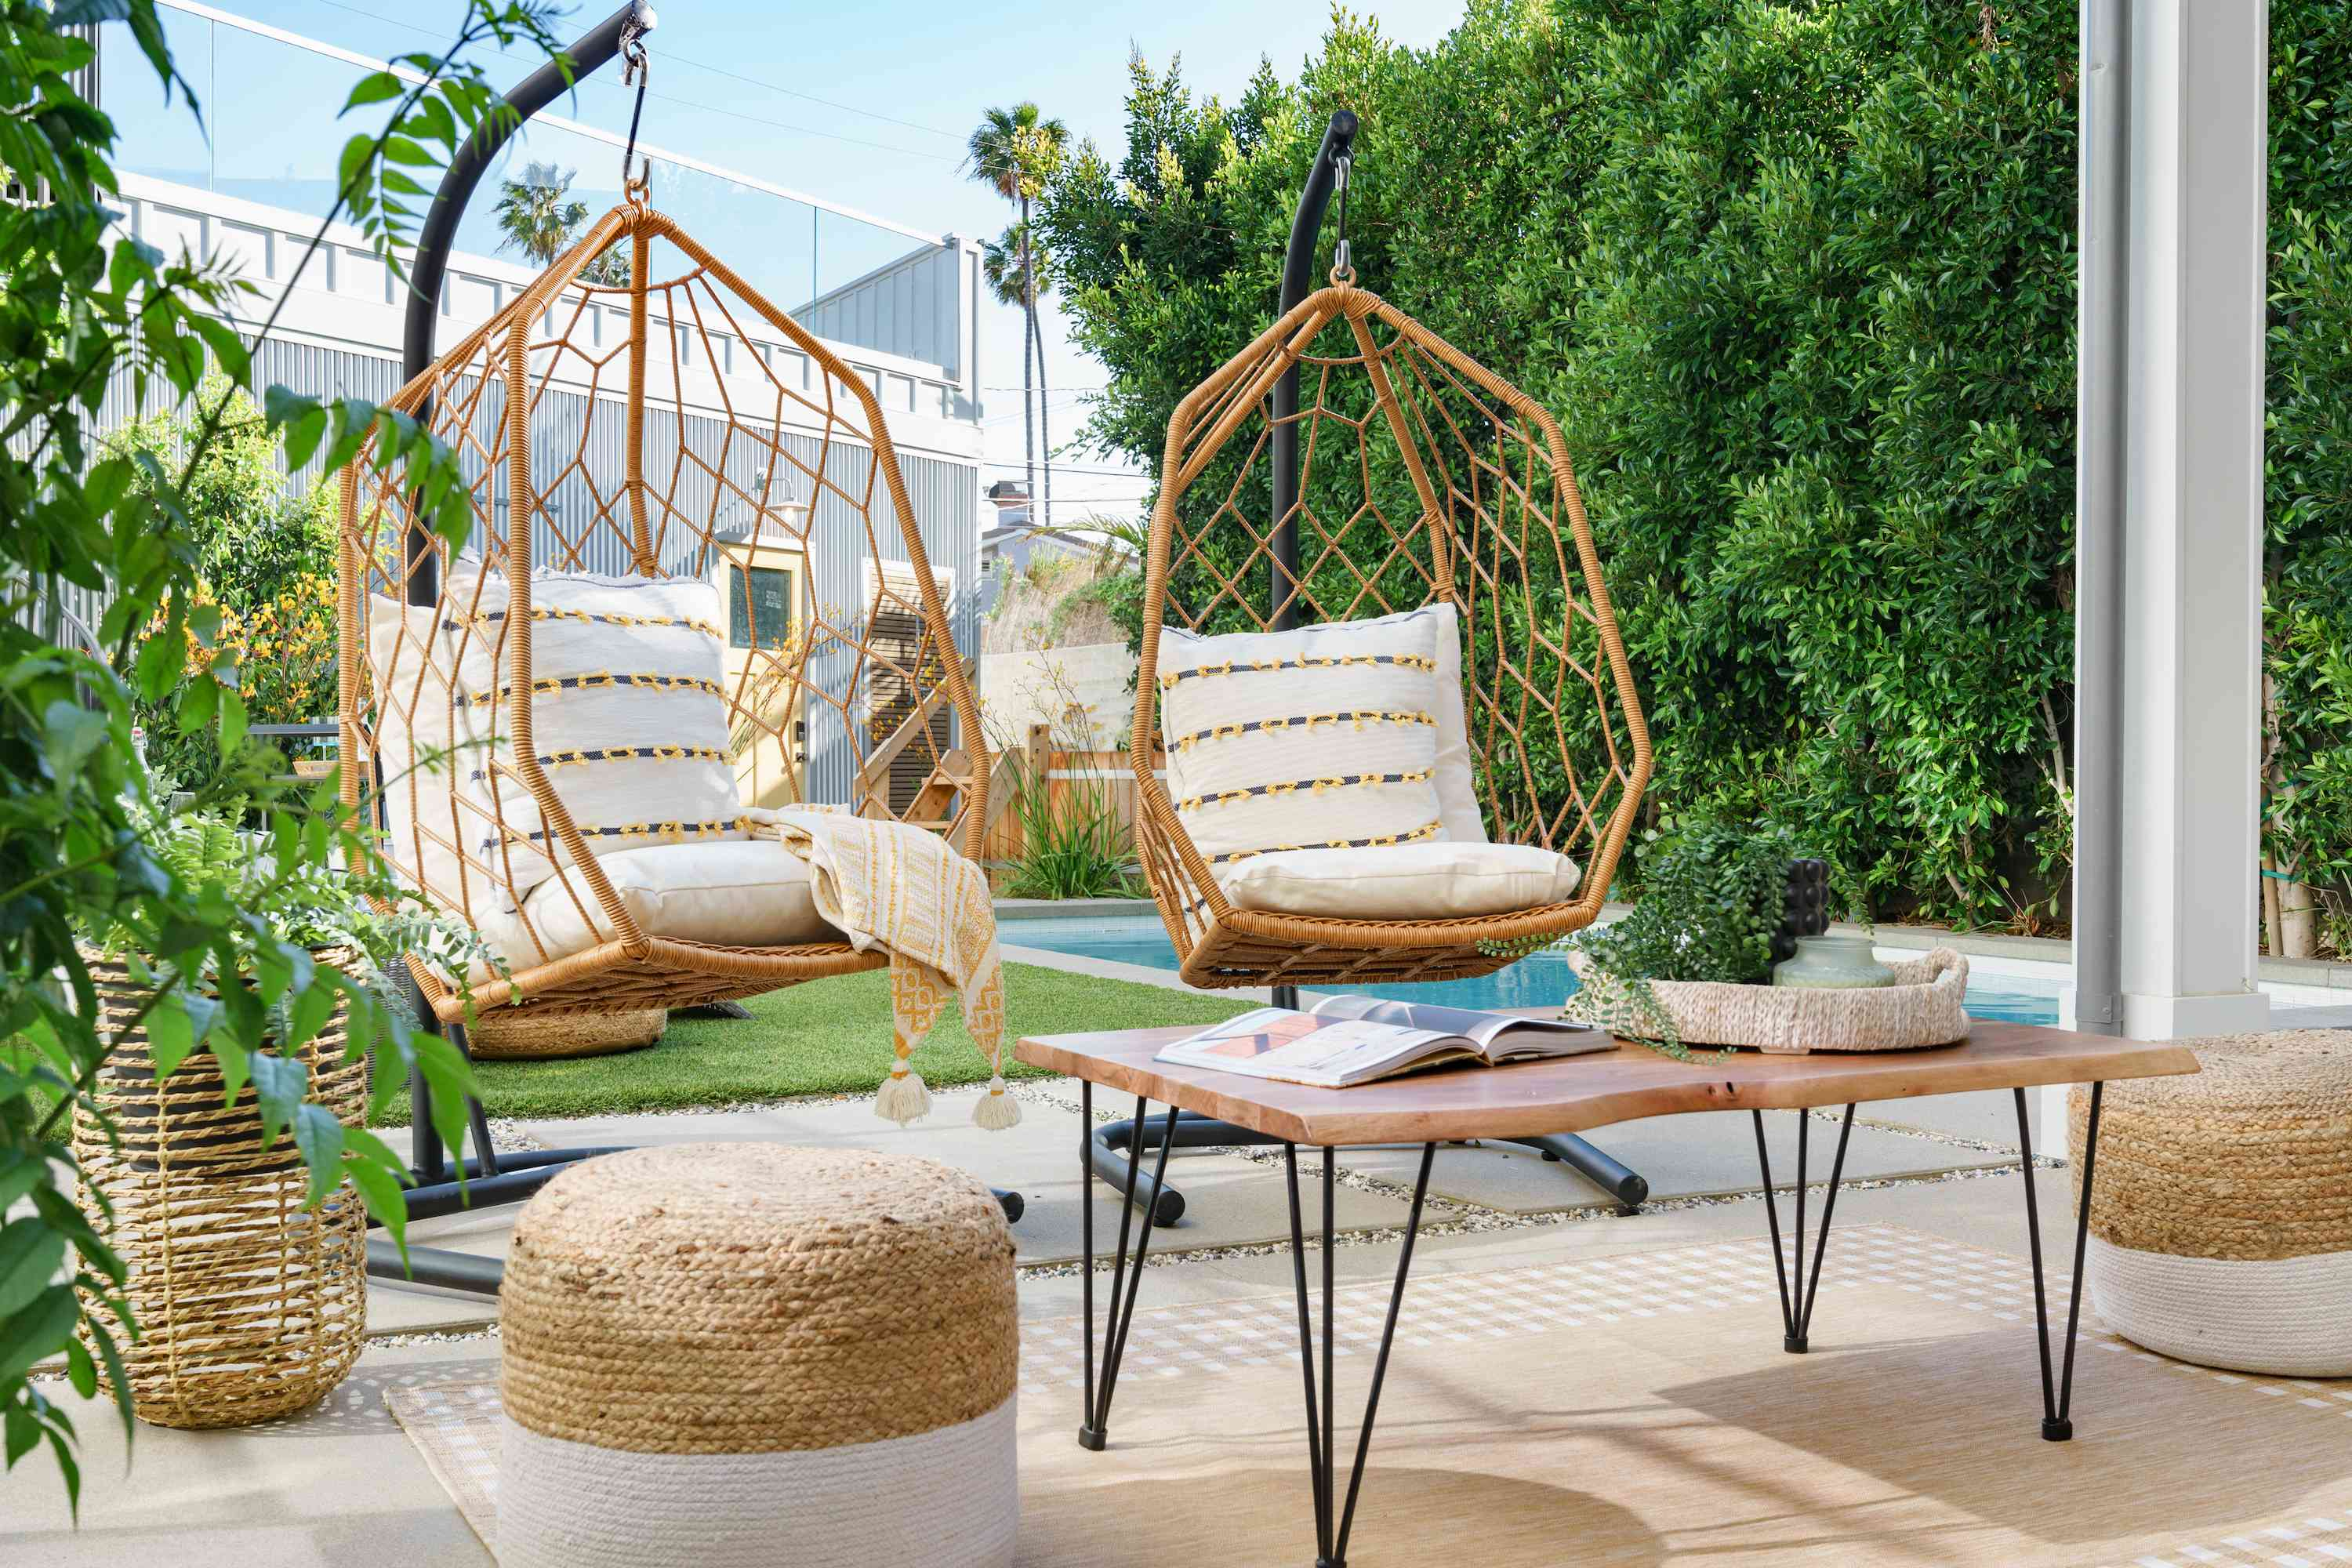 Two hanging rattan chairs outside.